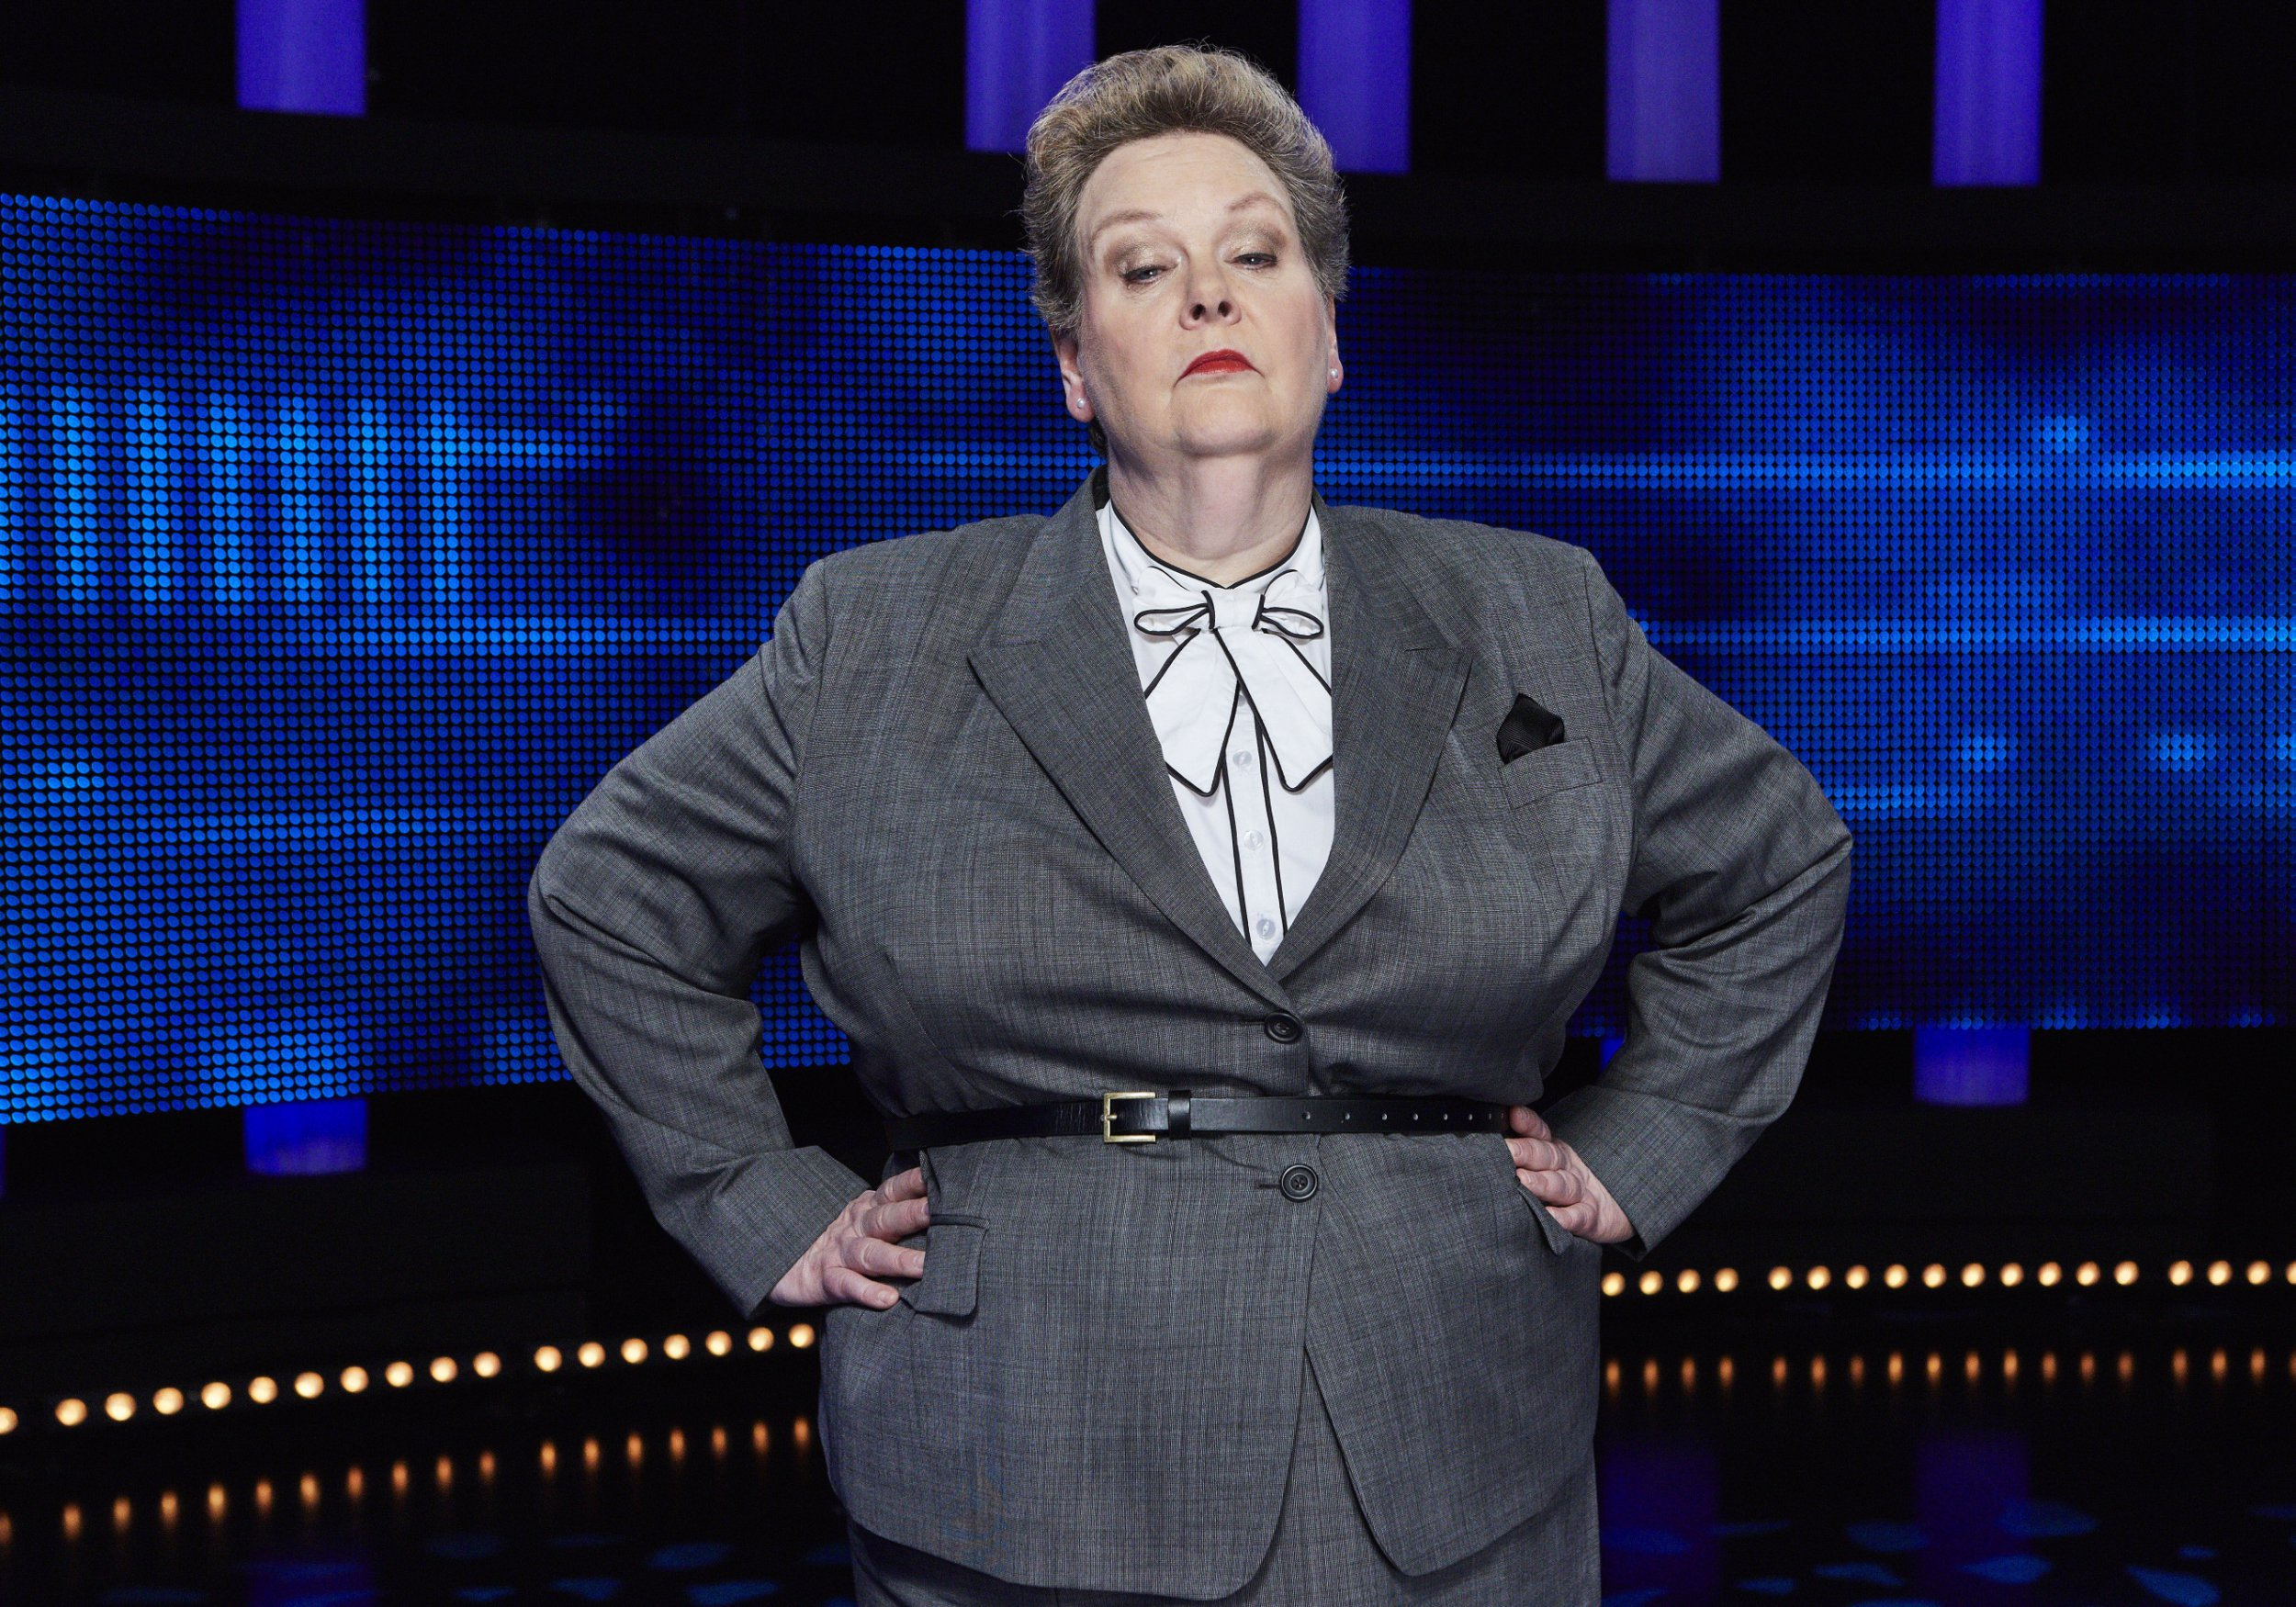 "Editorial use only Mandatory Credit: Photo by ITV/REX/Shutterstock (9313510s) Chaser, Anne Hegerty 'The Chase' TV Series - 2018 The Chase is an ITV quiz show hosted by Bradley Walsh, in which Contestants play against a professional quizzer, the ""chaser"", who attempts to prevent them from winning the cash prize. The Chasers include stand-up comedian Paul 'The Sinnerman' Sinha; Anne 'The Governess' Hegerty; Shaun 'The Barrister' Wallace; Mark 'The Beast' Labbett; and Jenny 'The Vixen' Ryan."